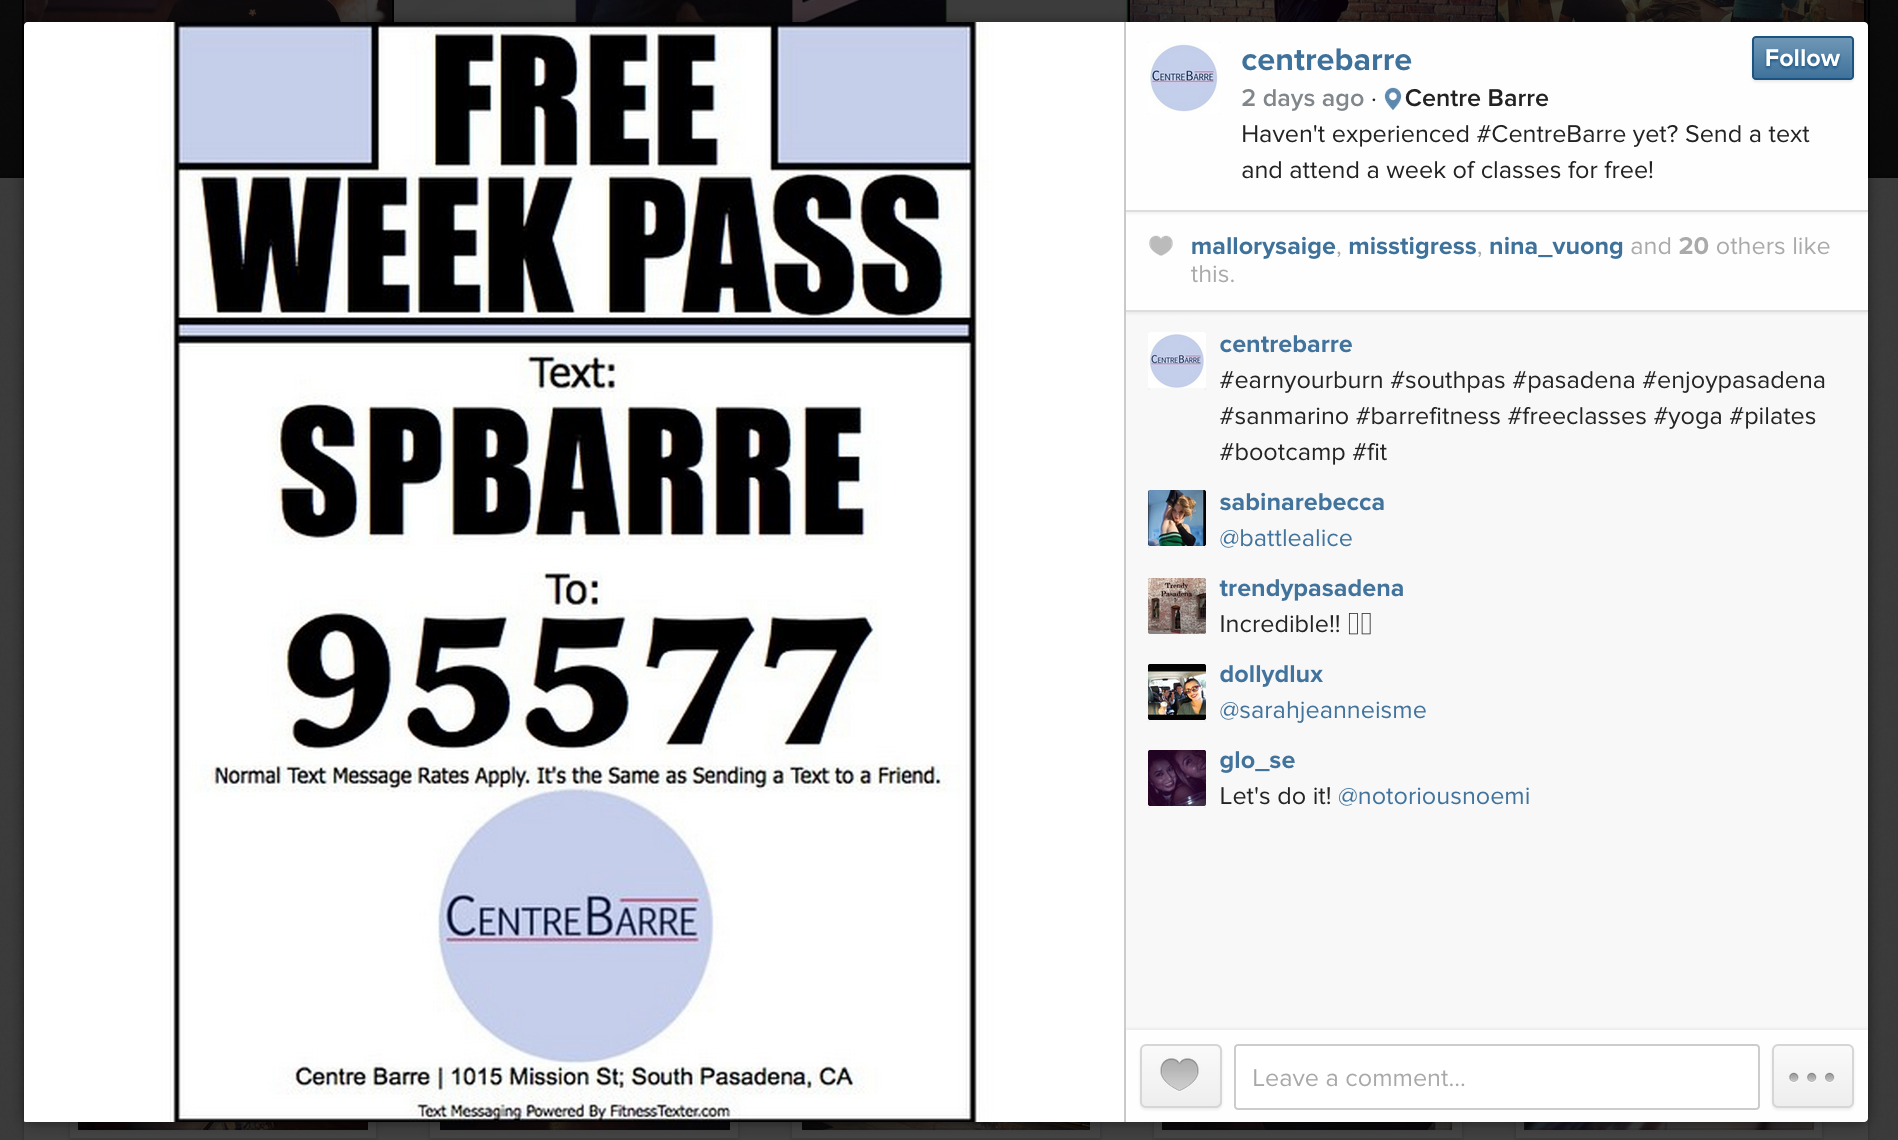 Centre Barre using FitnessTexter on Facebook